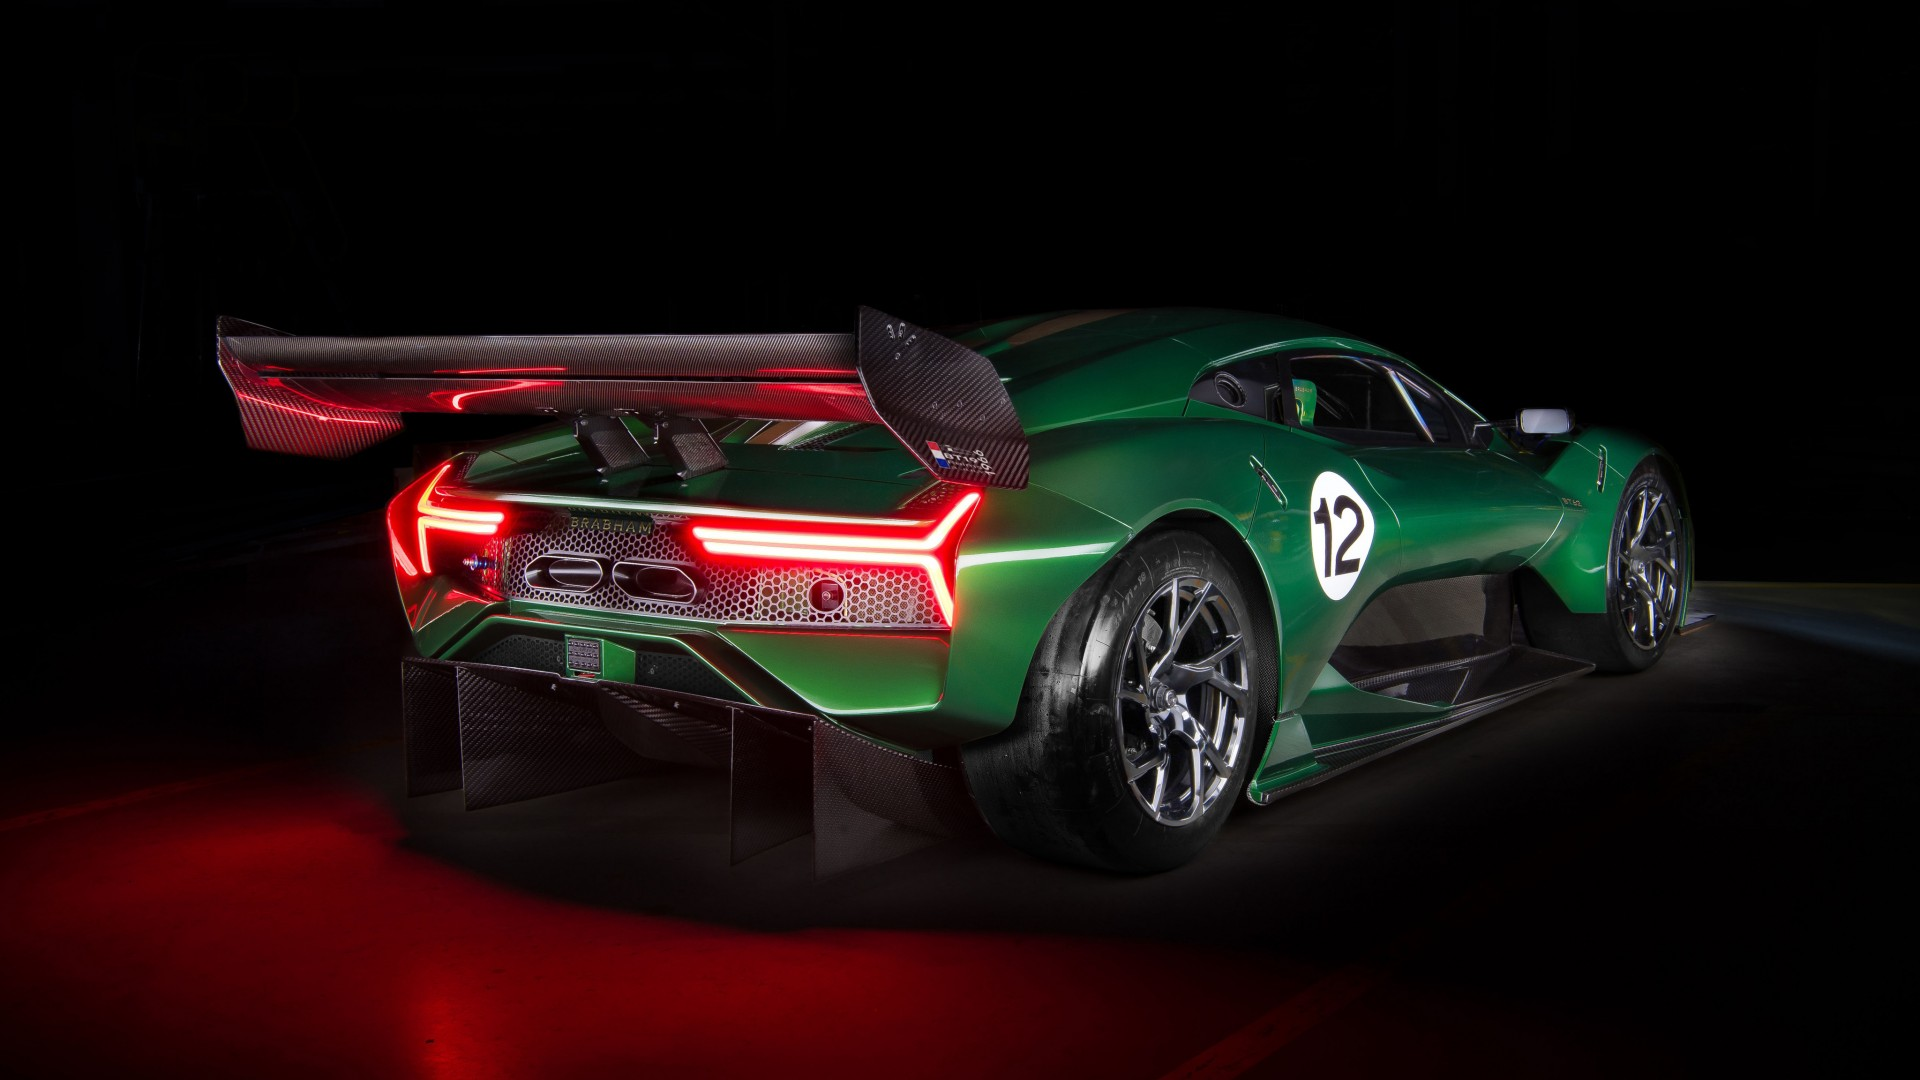 2019 Brabham Bt62 4k 3 Wallpaper Hd Car Wallpapers Id